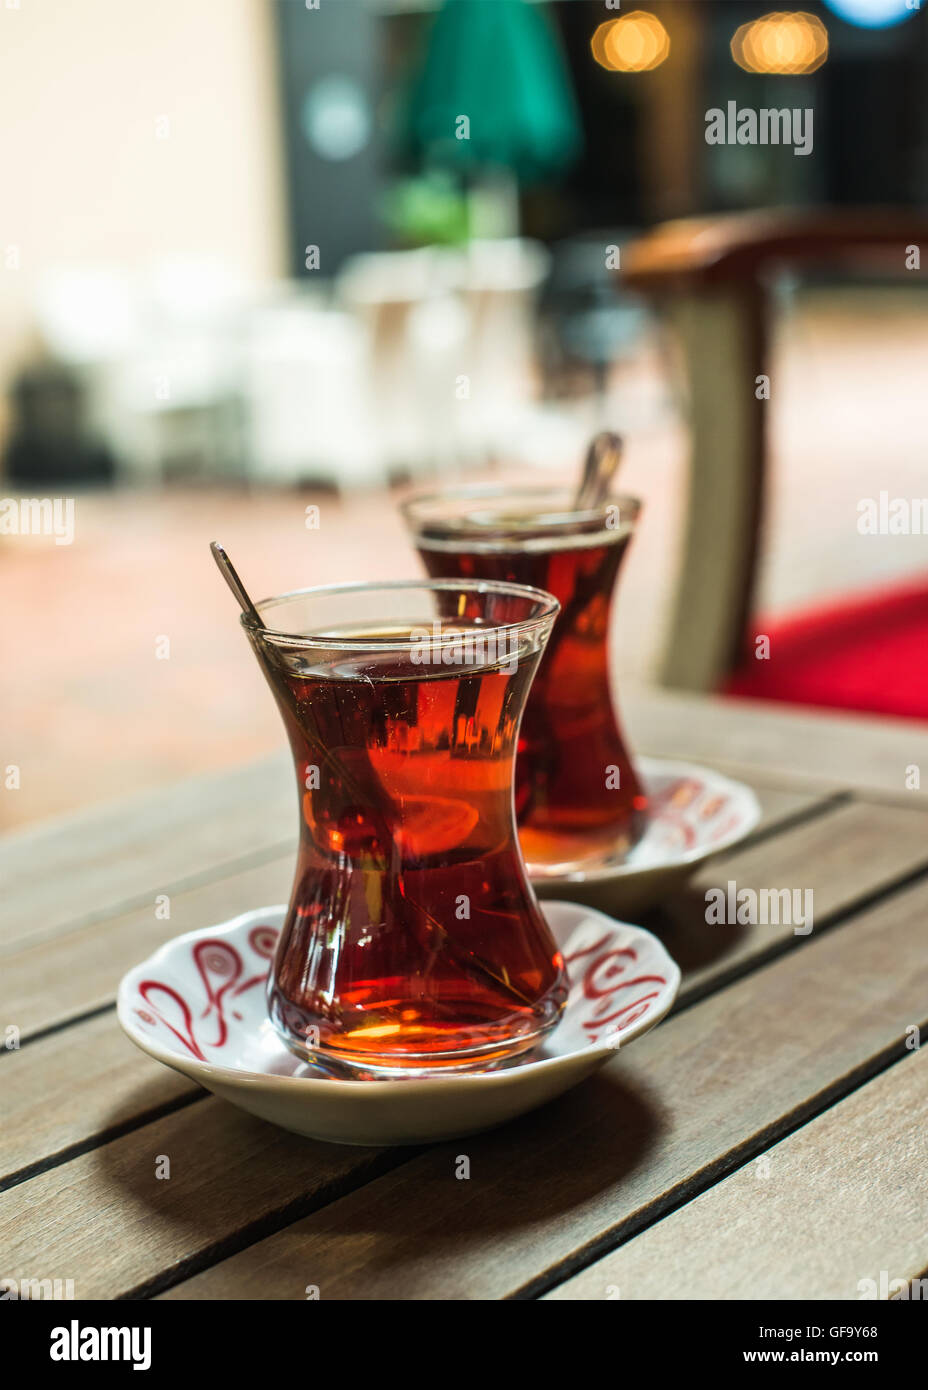 Turkish tea in traditional tulip glasses on table of street cafe - Stock Image